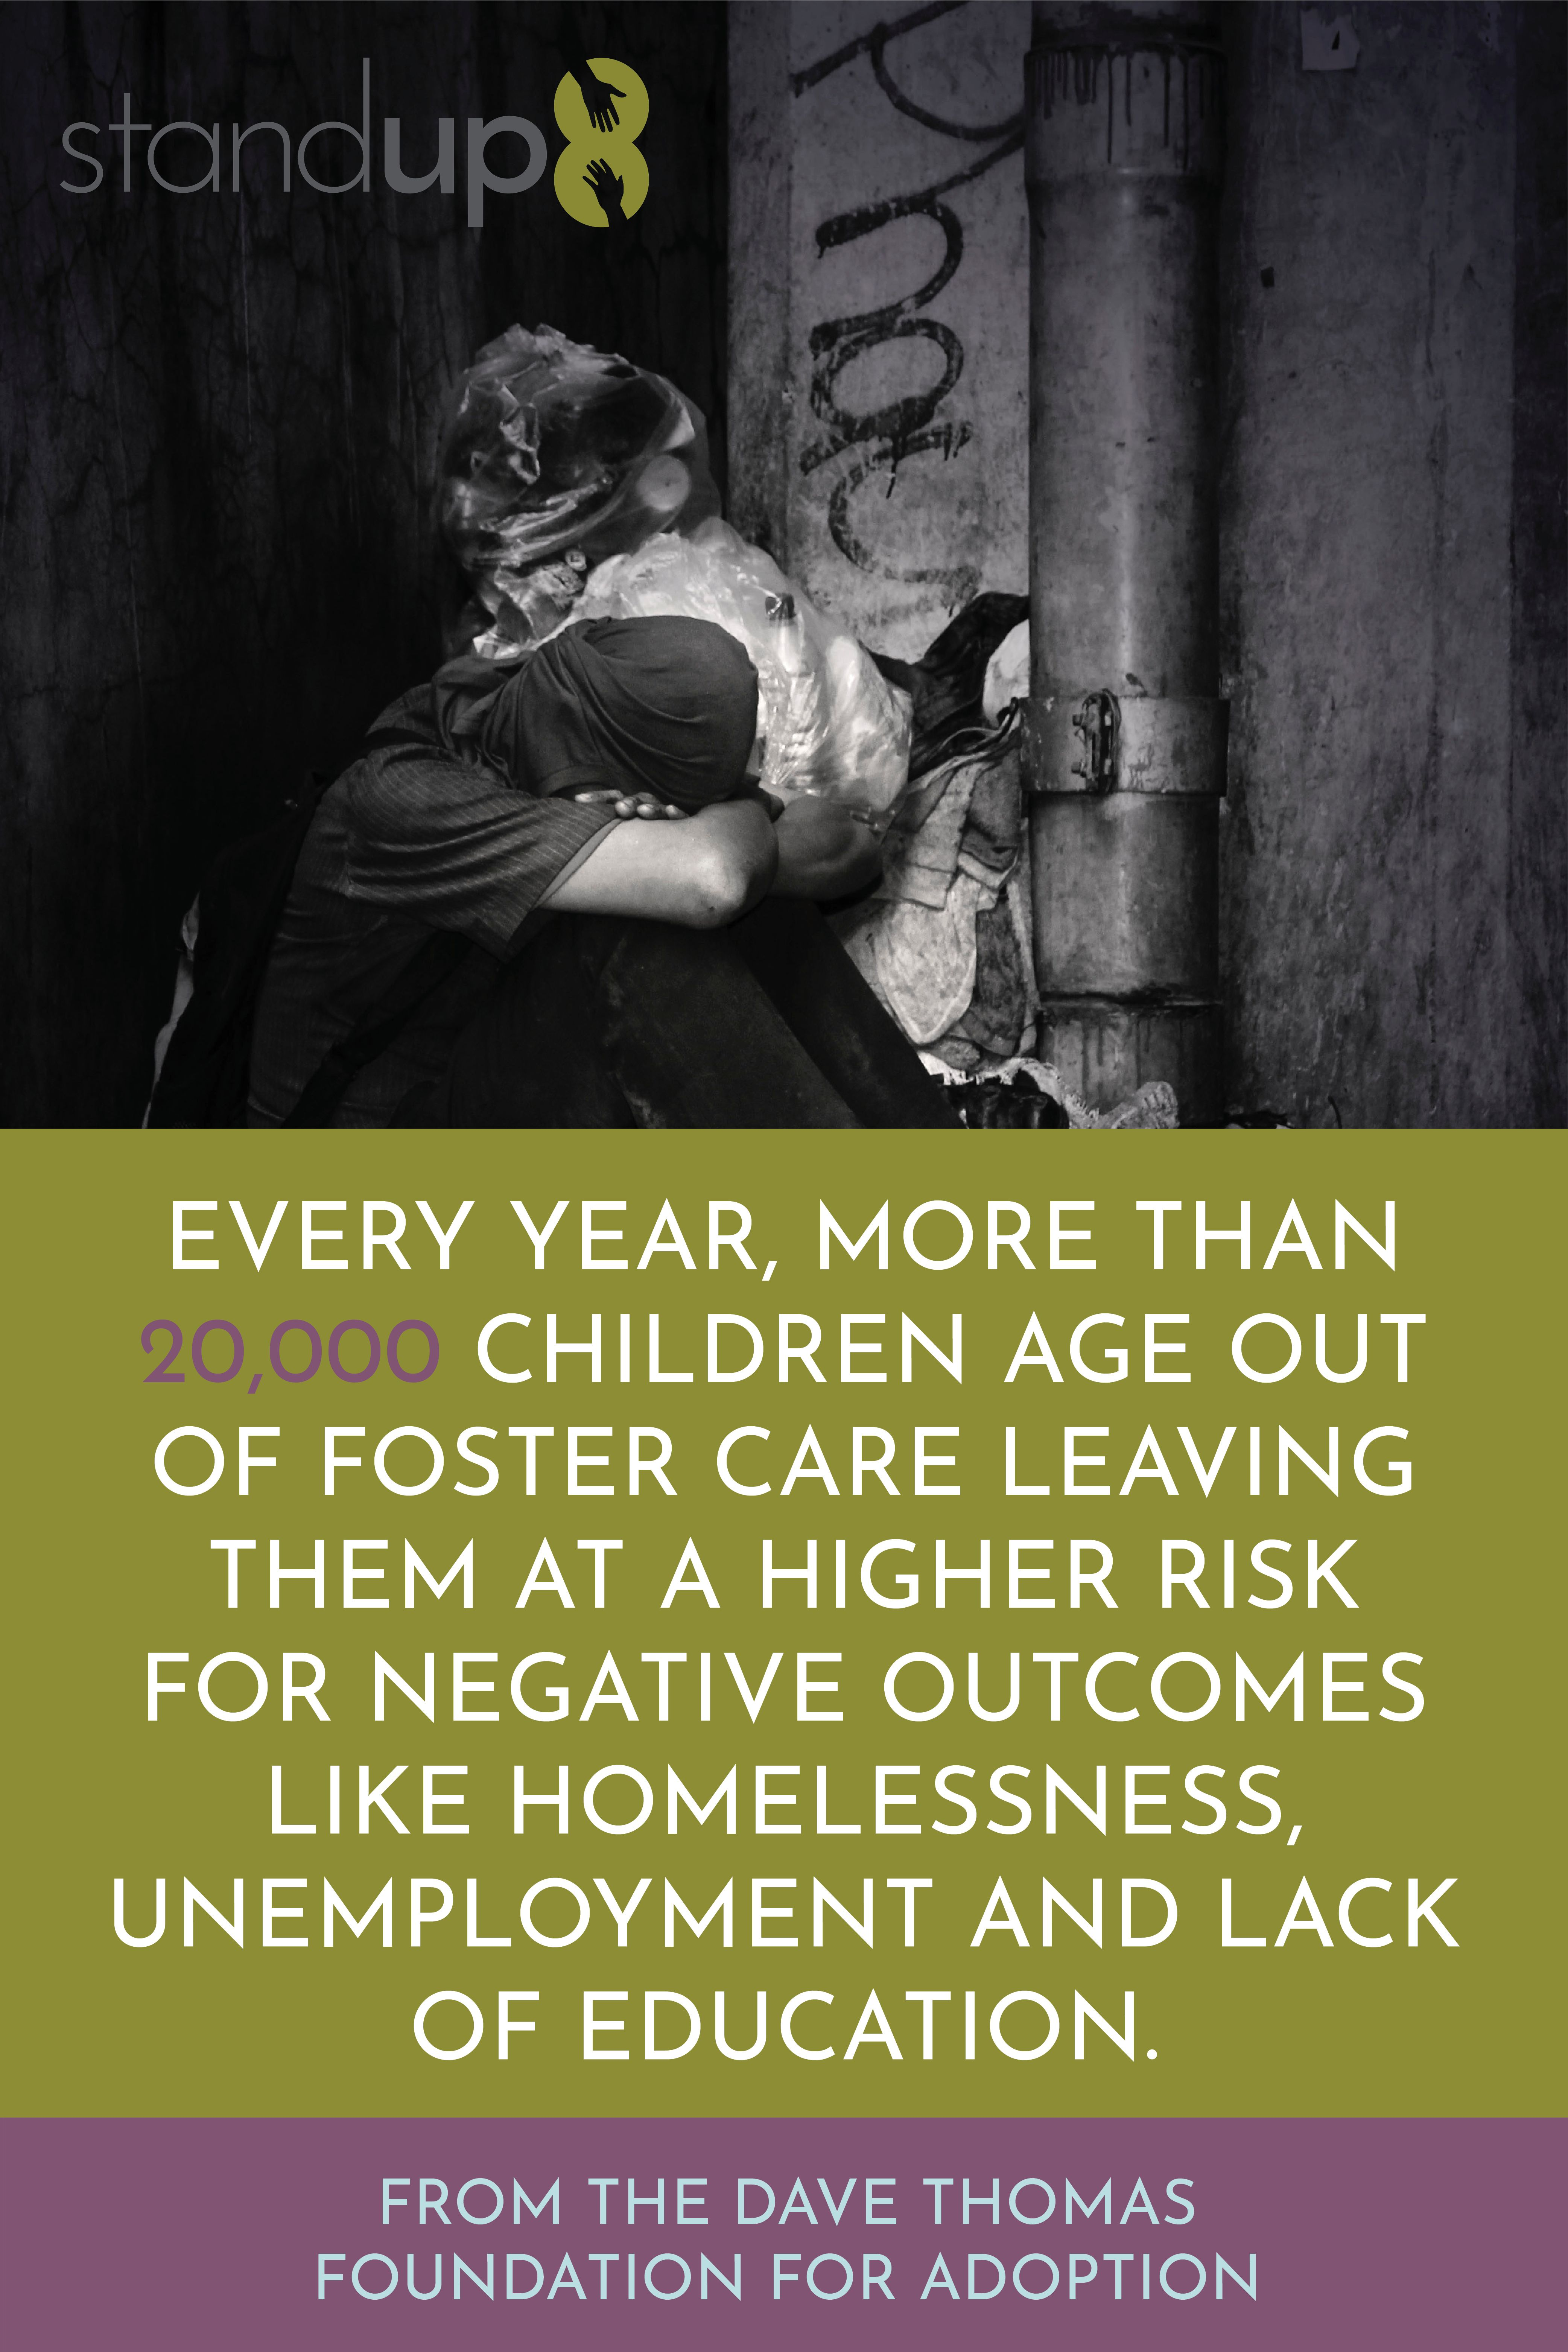 Foster care statistics stand up 8 every year more